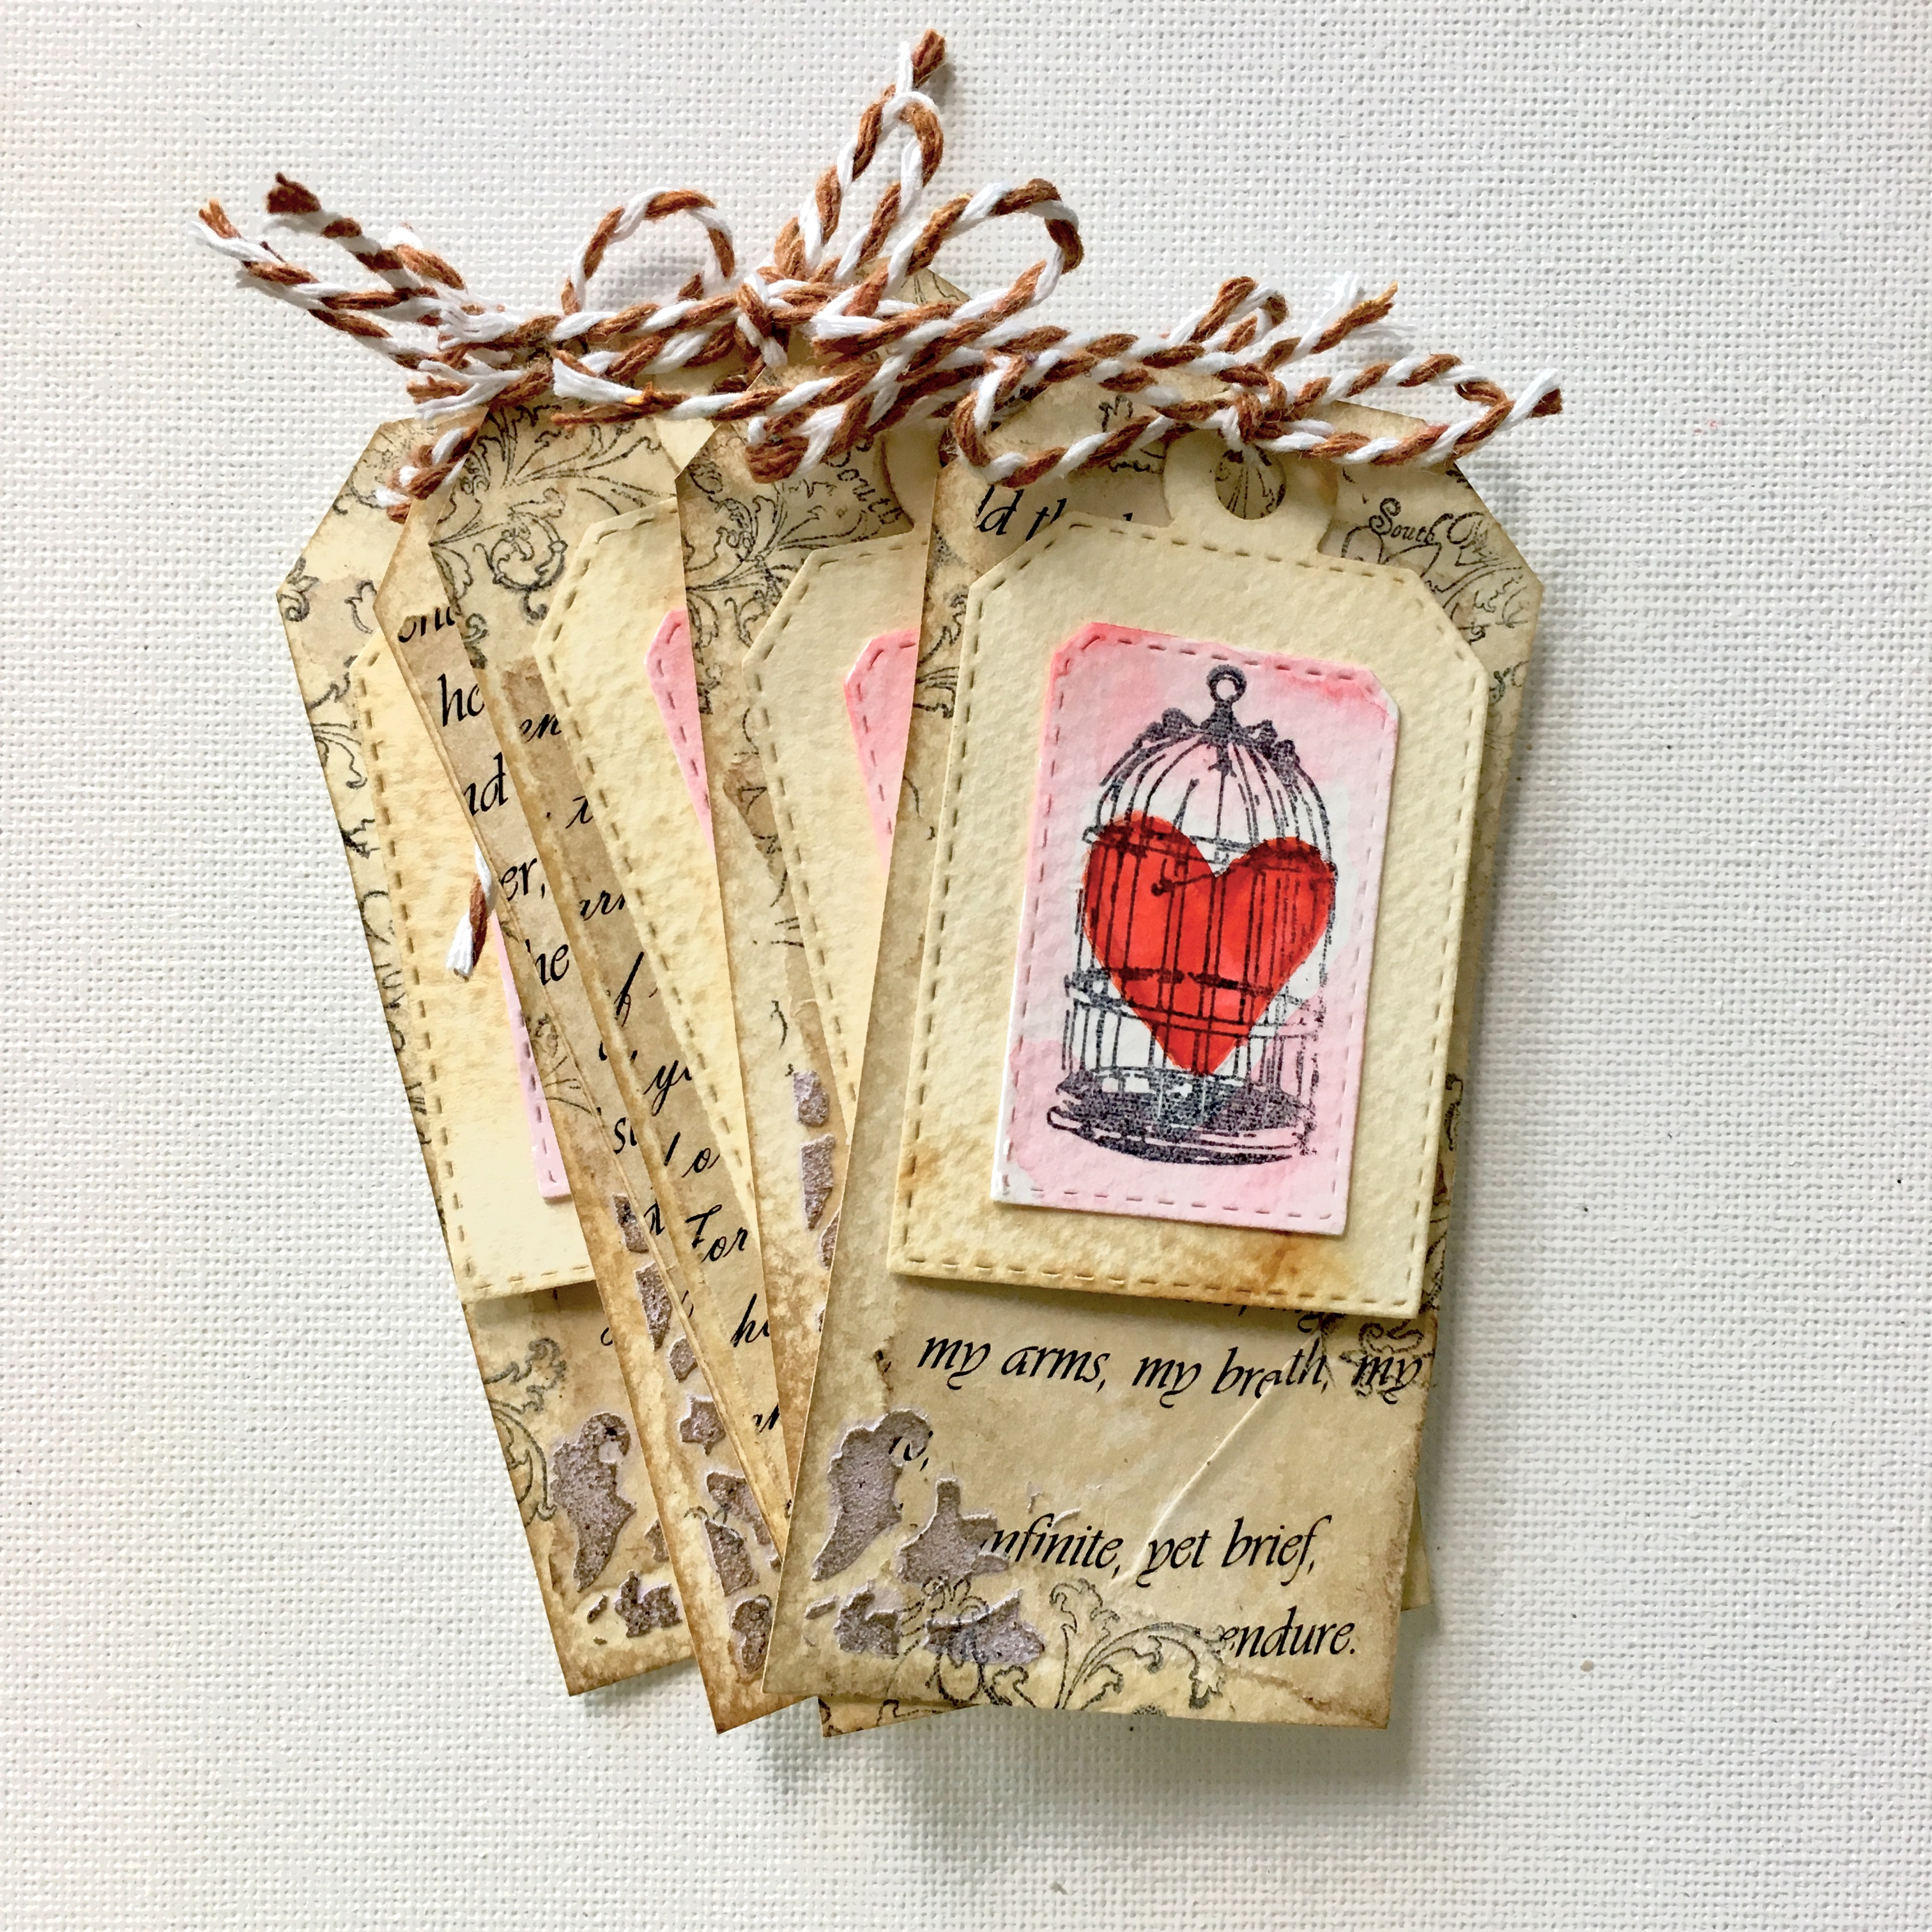 vintage style gift tags in brown with red hearts in a cage watercolour drawing